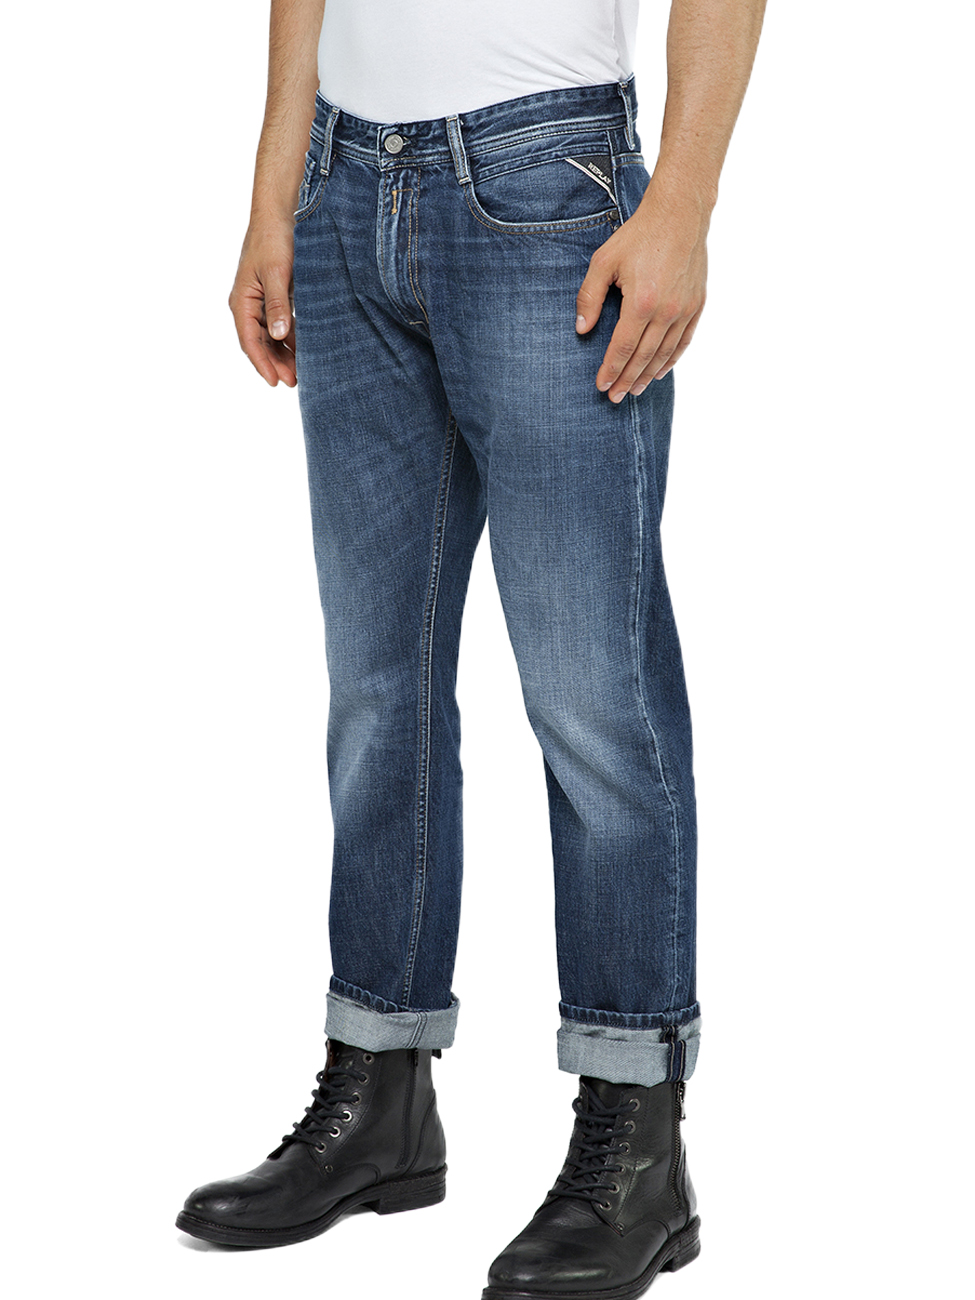 replay-herren-jeans-rob-slim-fit-blau-dark-blue-denim, 99.00 EUR @ jeans